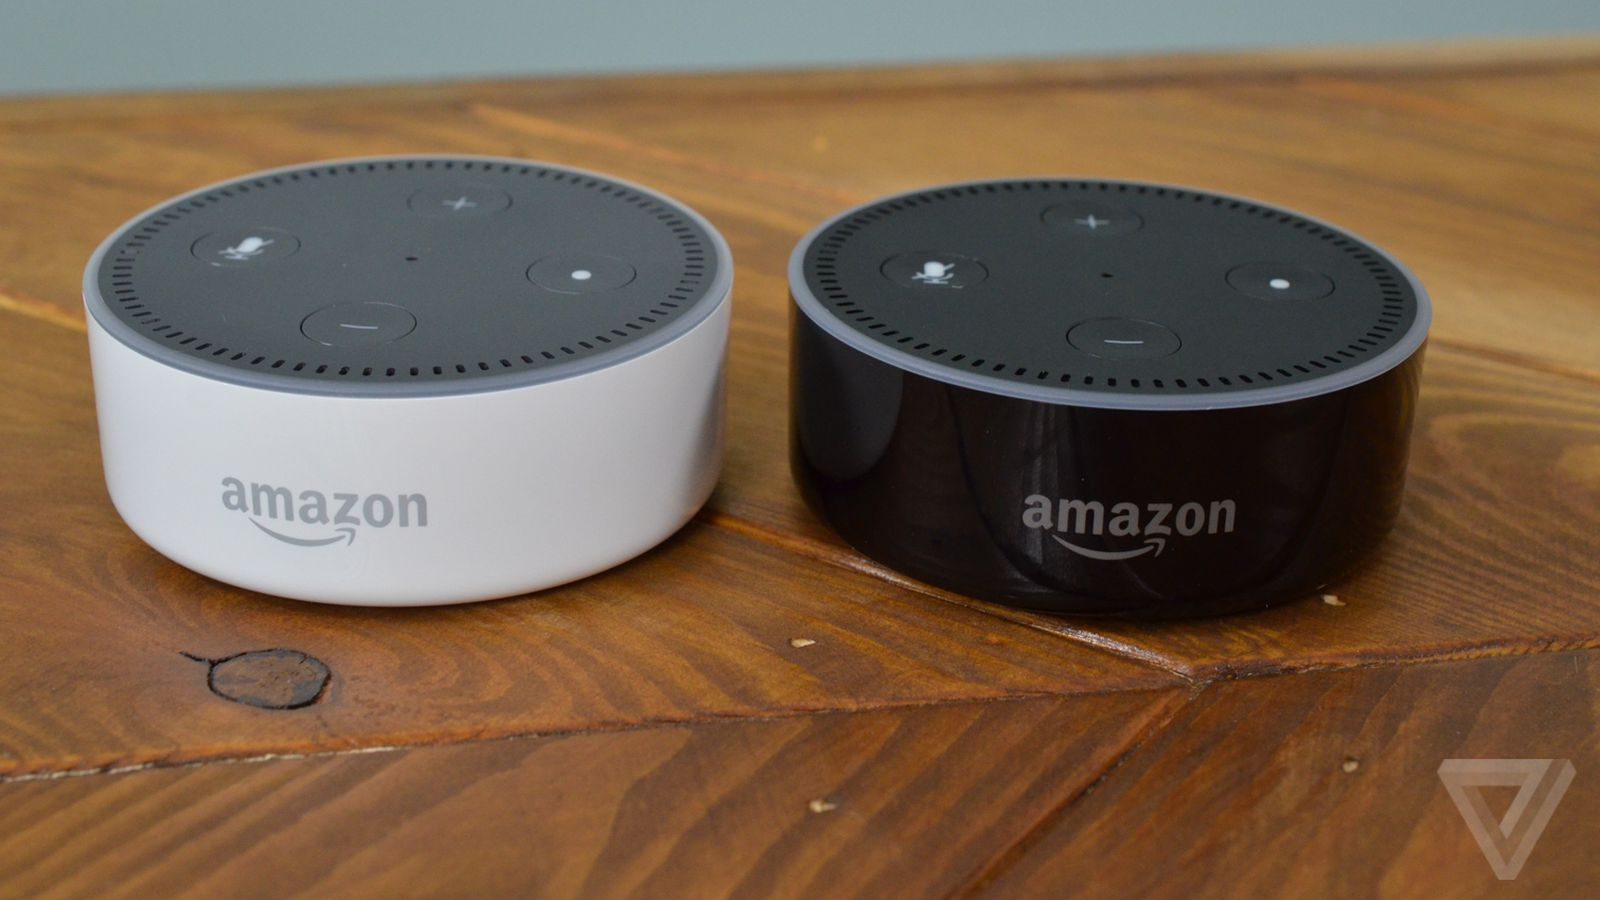 amazon 39 s cheaper echo dot improves voice recognition. Black Bedroom Furniture Sets. Home Design Ideas